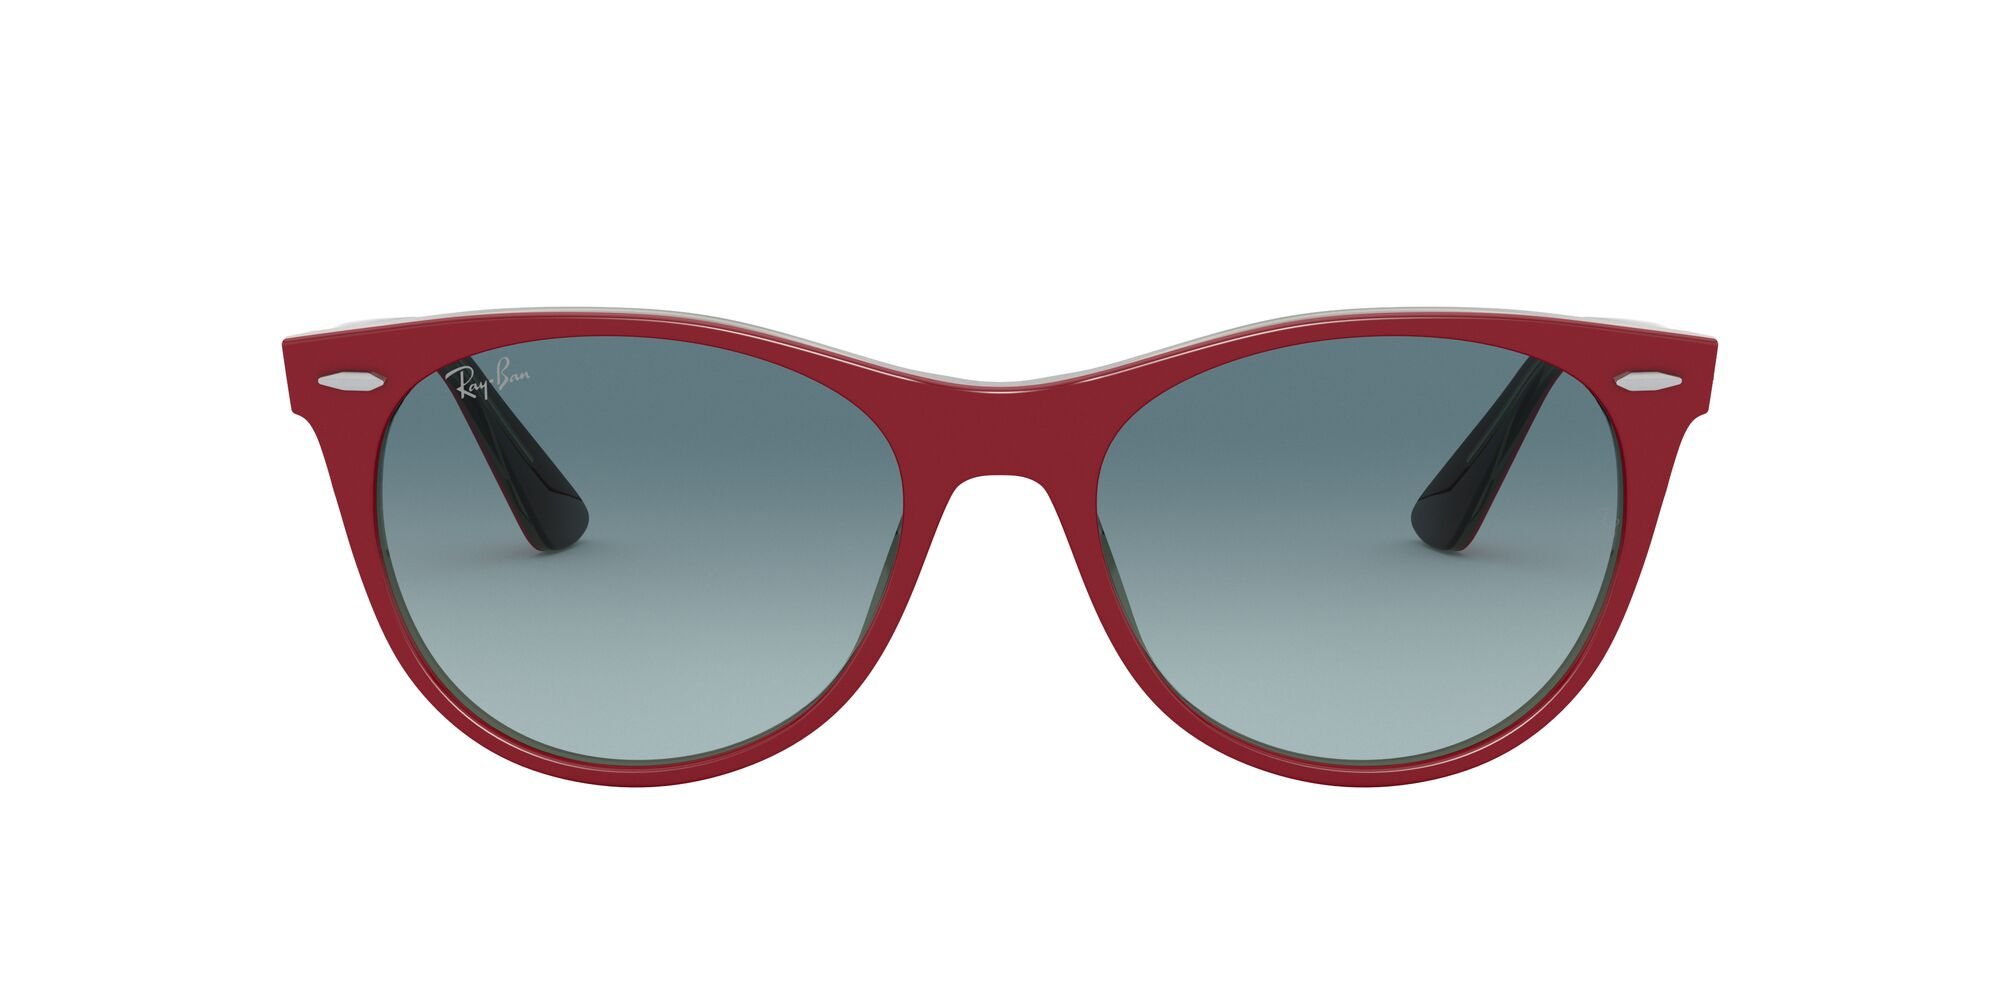 Front Ray-Ban Ray-Ban 0RB2185 12963M 55/18 Rood/Blauw